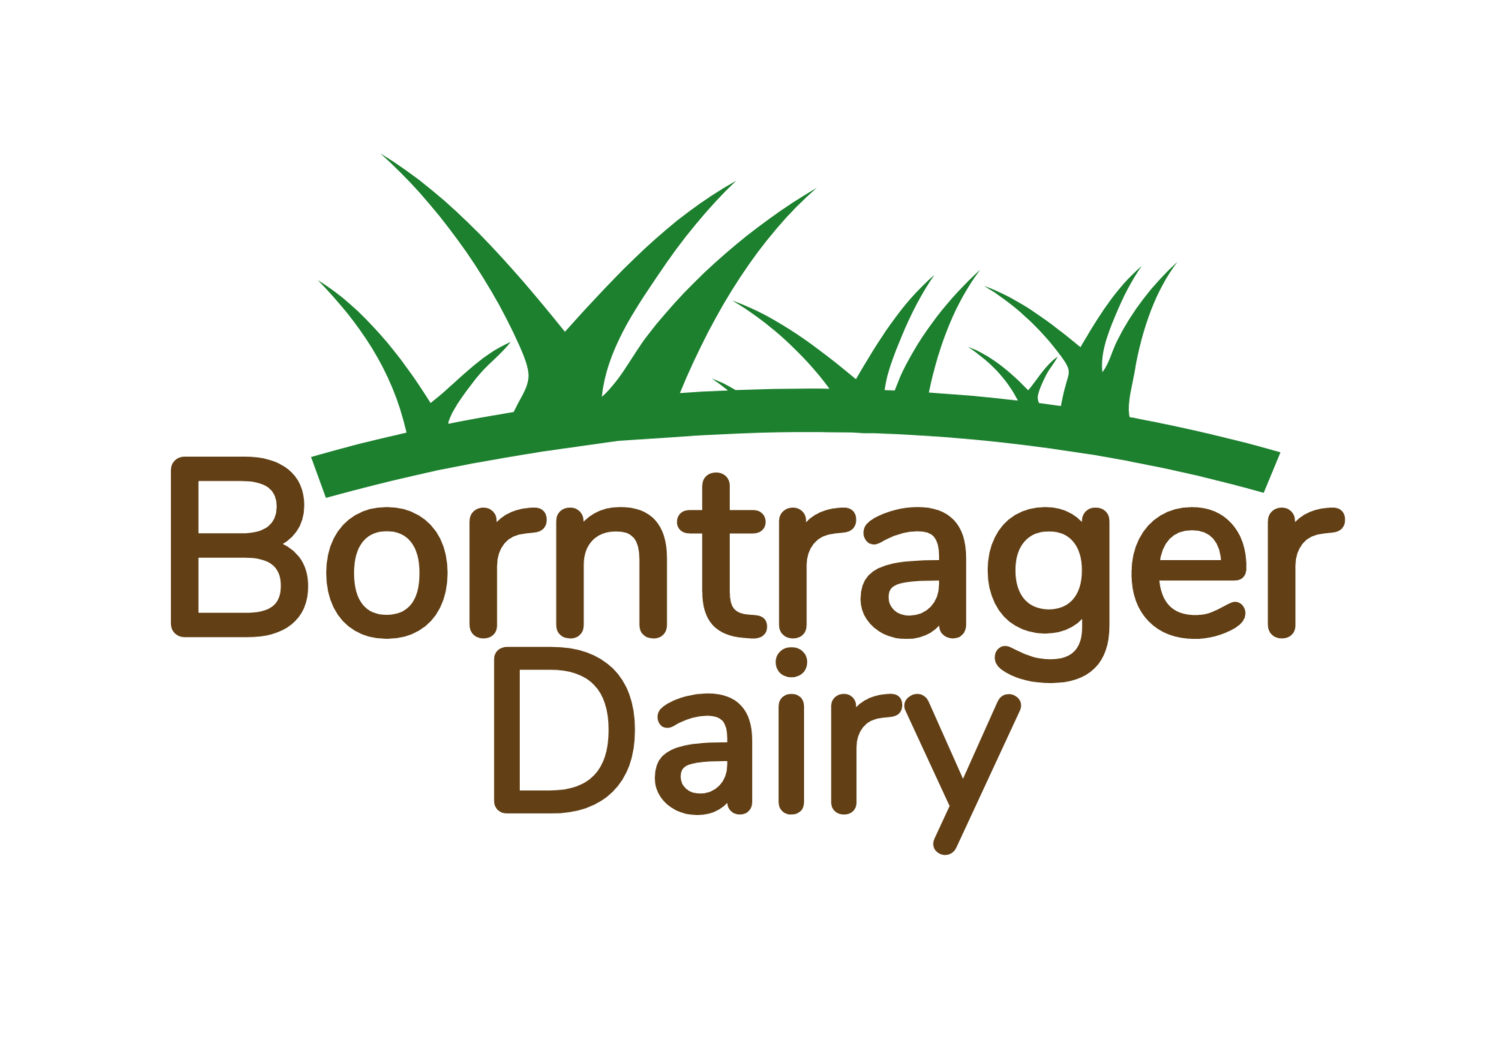 Borntrager Dairy